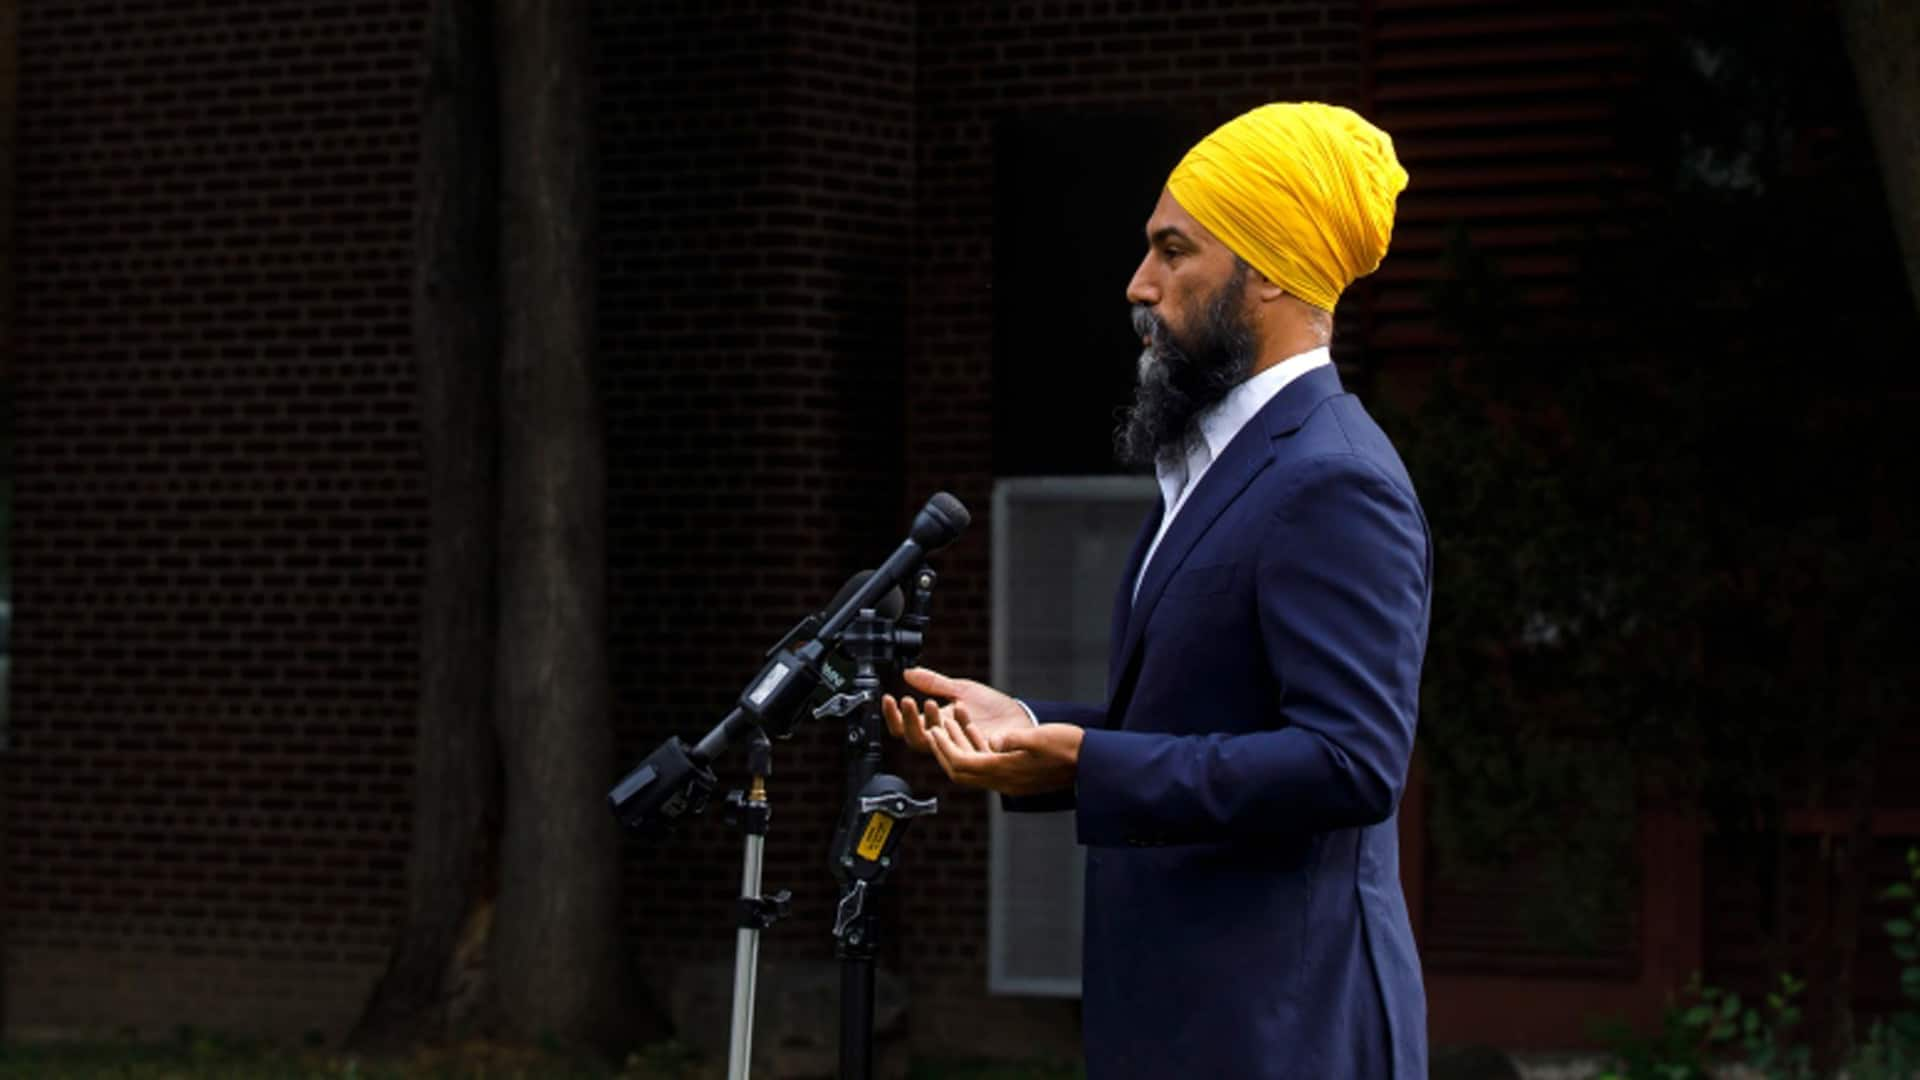 Singh delivers speech in Ottawa